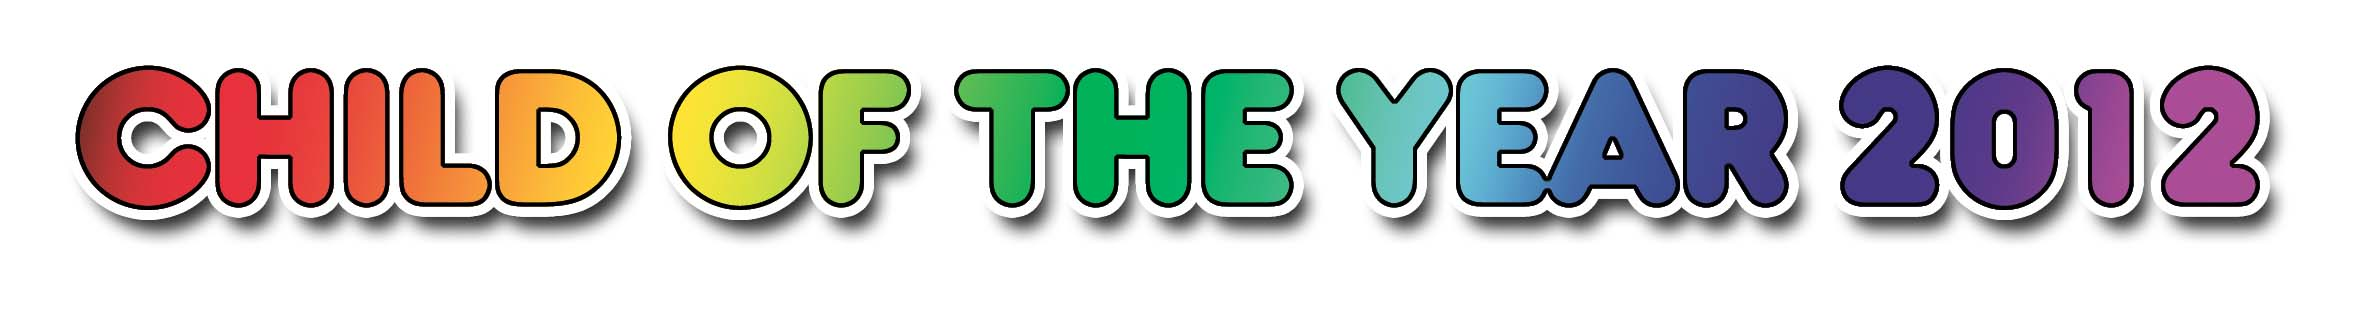 child of the year logo